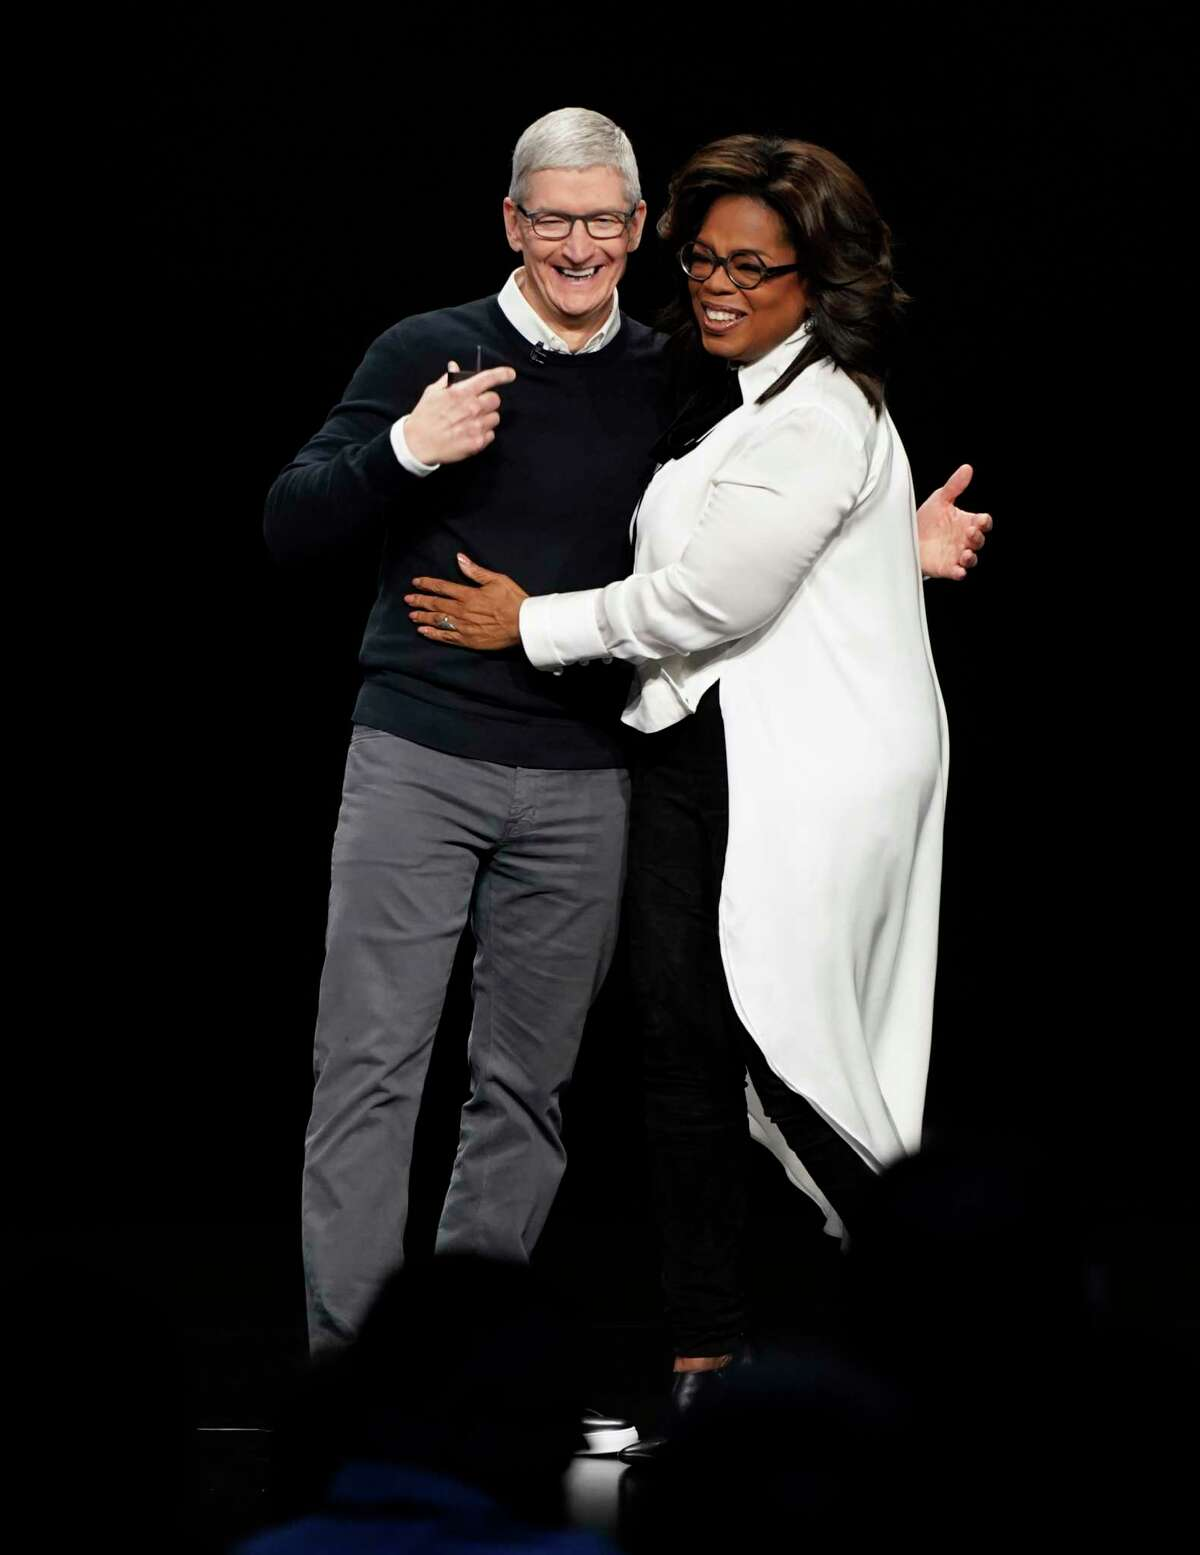 Apple CEO Tim Cook and Oprah Winfrey at the Steve Jobs Theater during an event to announce new products Monday, March 25, 2019, in Cupertino, Calif.